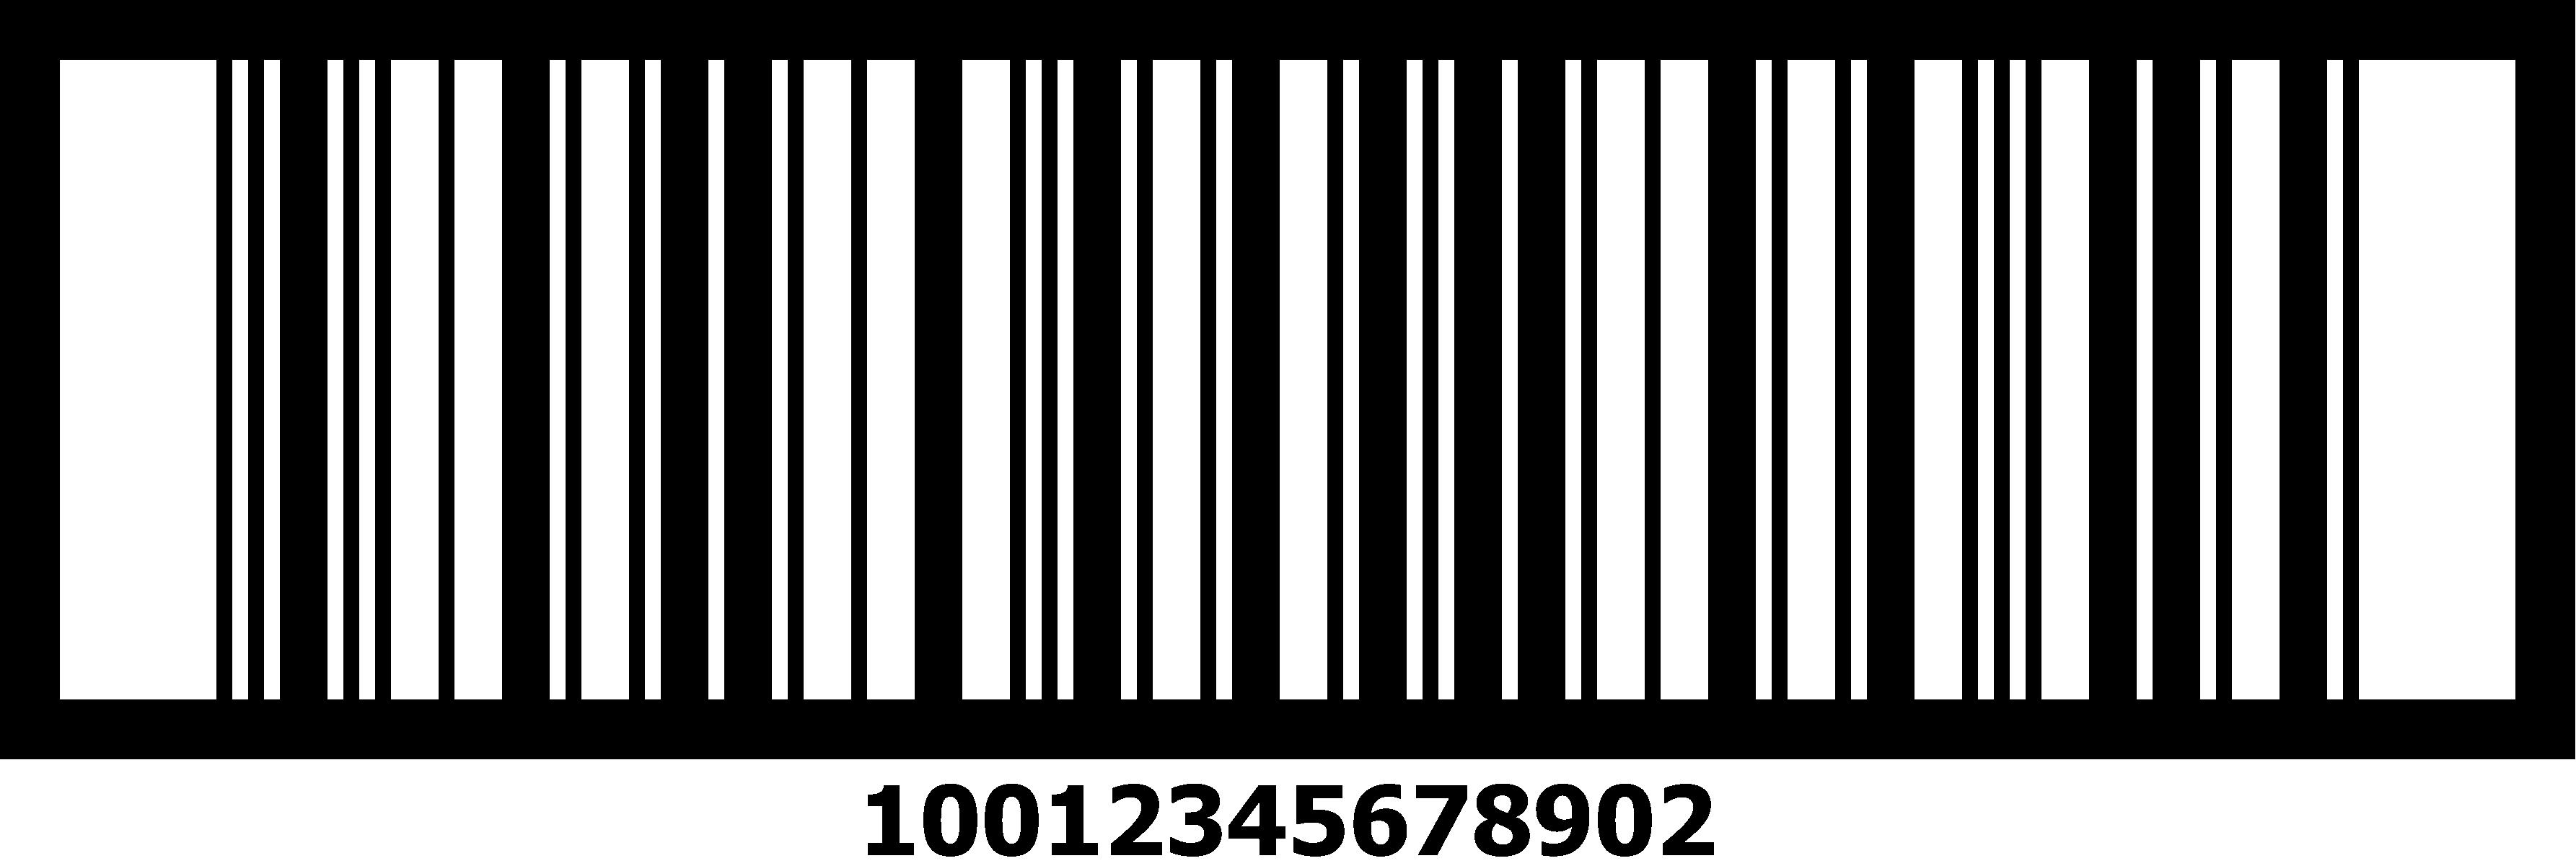 Ticket Barcode Clipart.